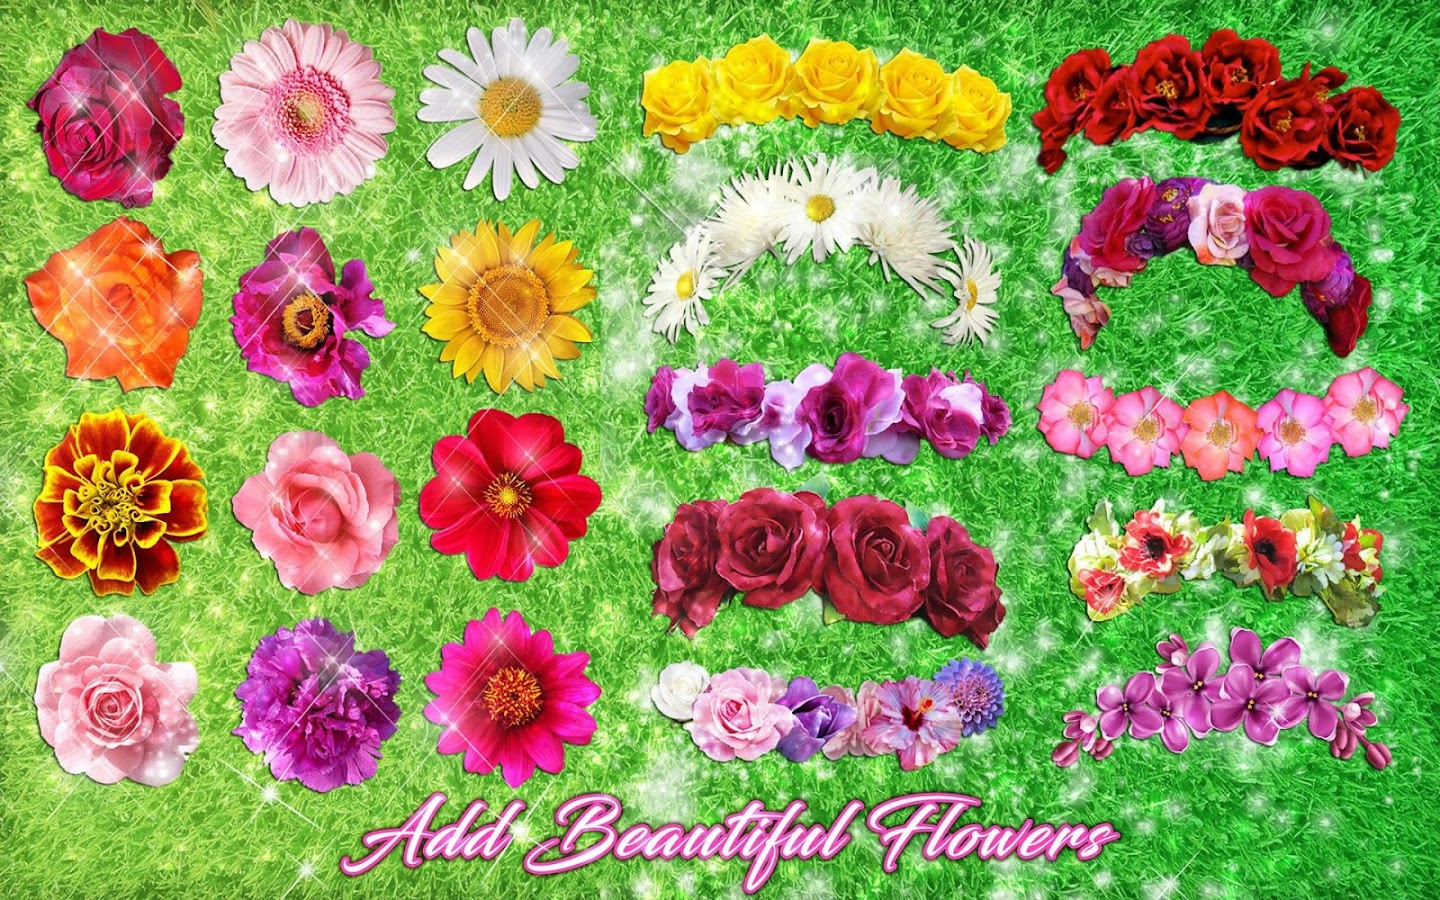 Flower Crown Photo Editor Filters For Selfies 18 Apk Download